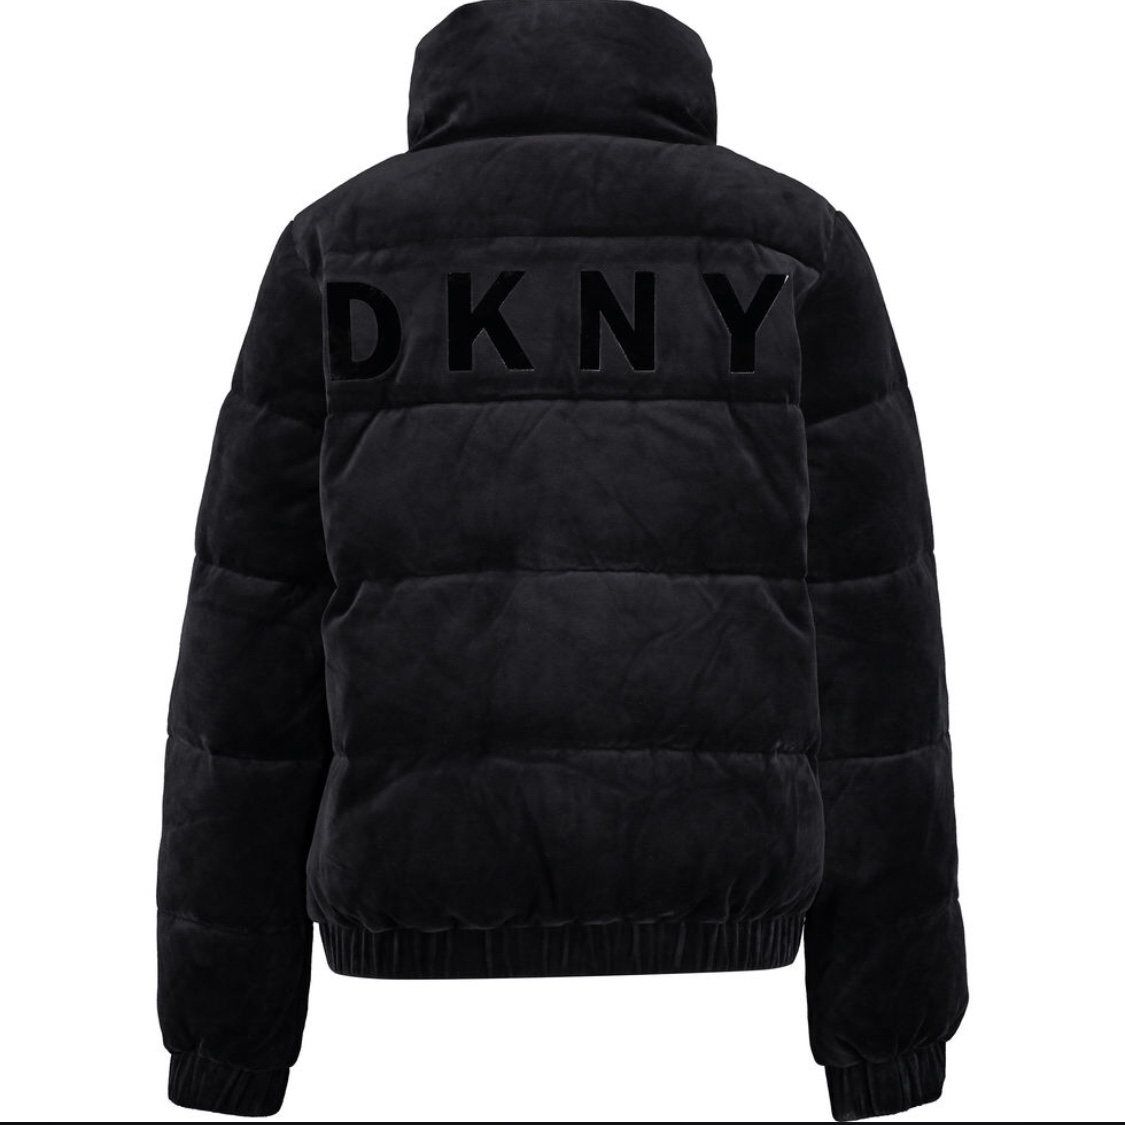 new authentic arrives search for clearance DKNY black velour puffer coat. y2k vibes! so soft... - Depop